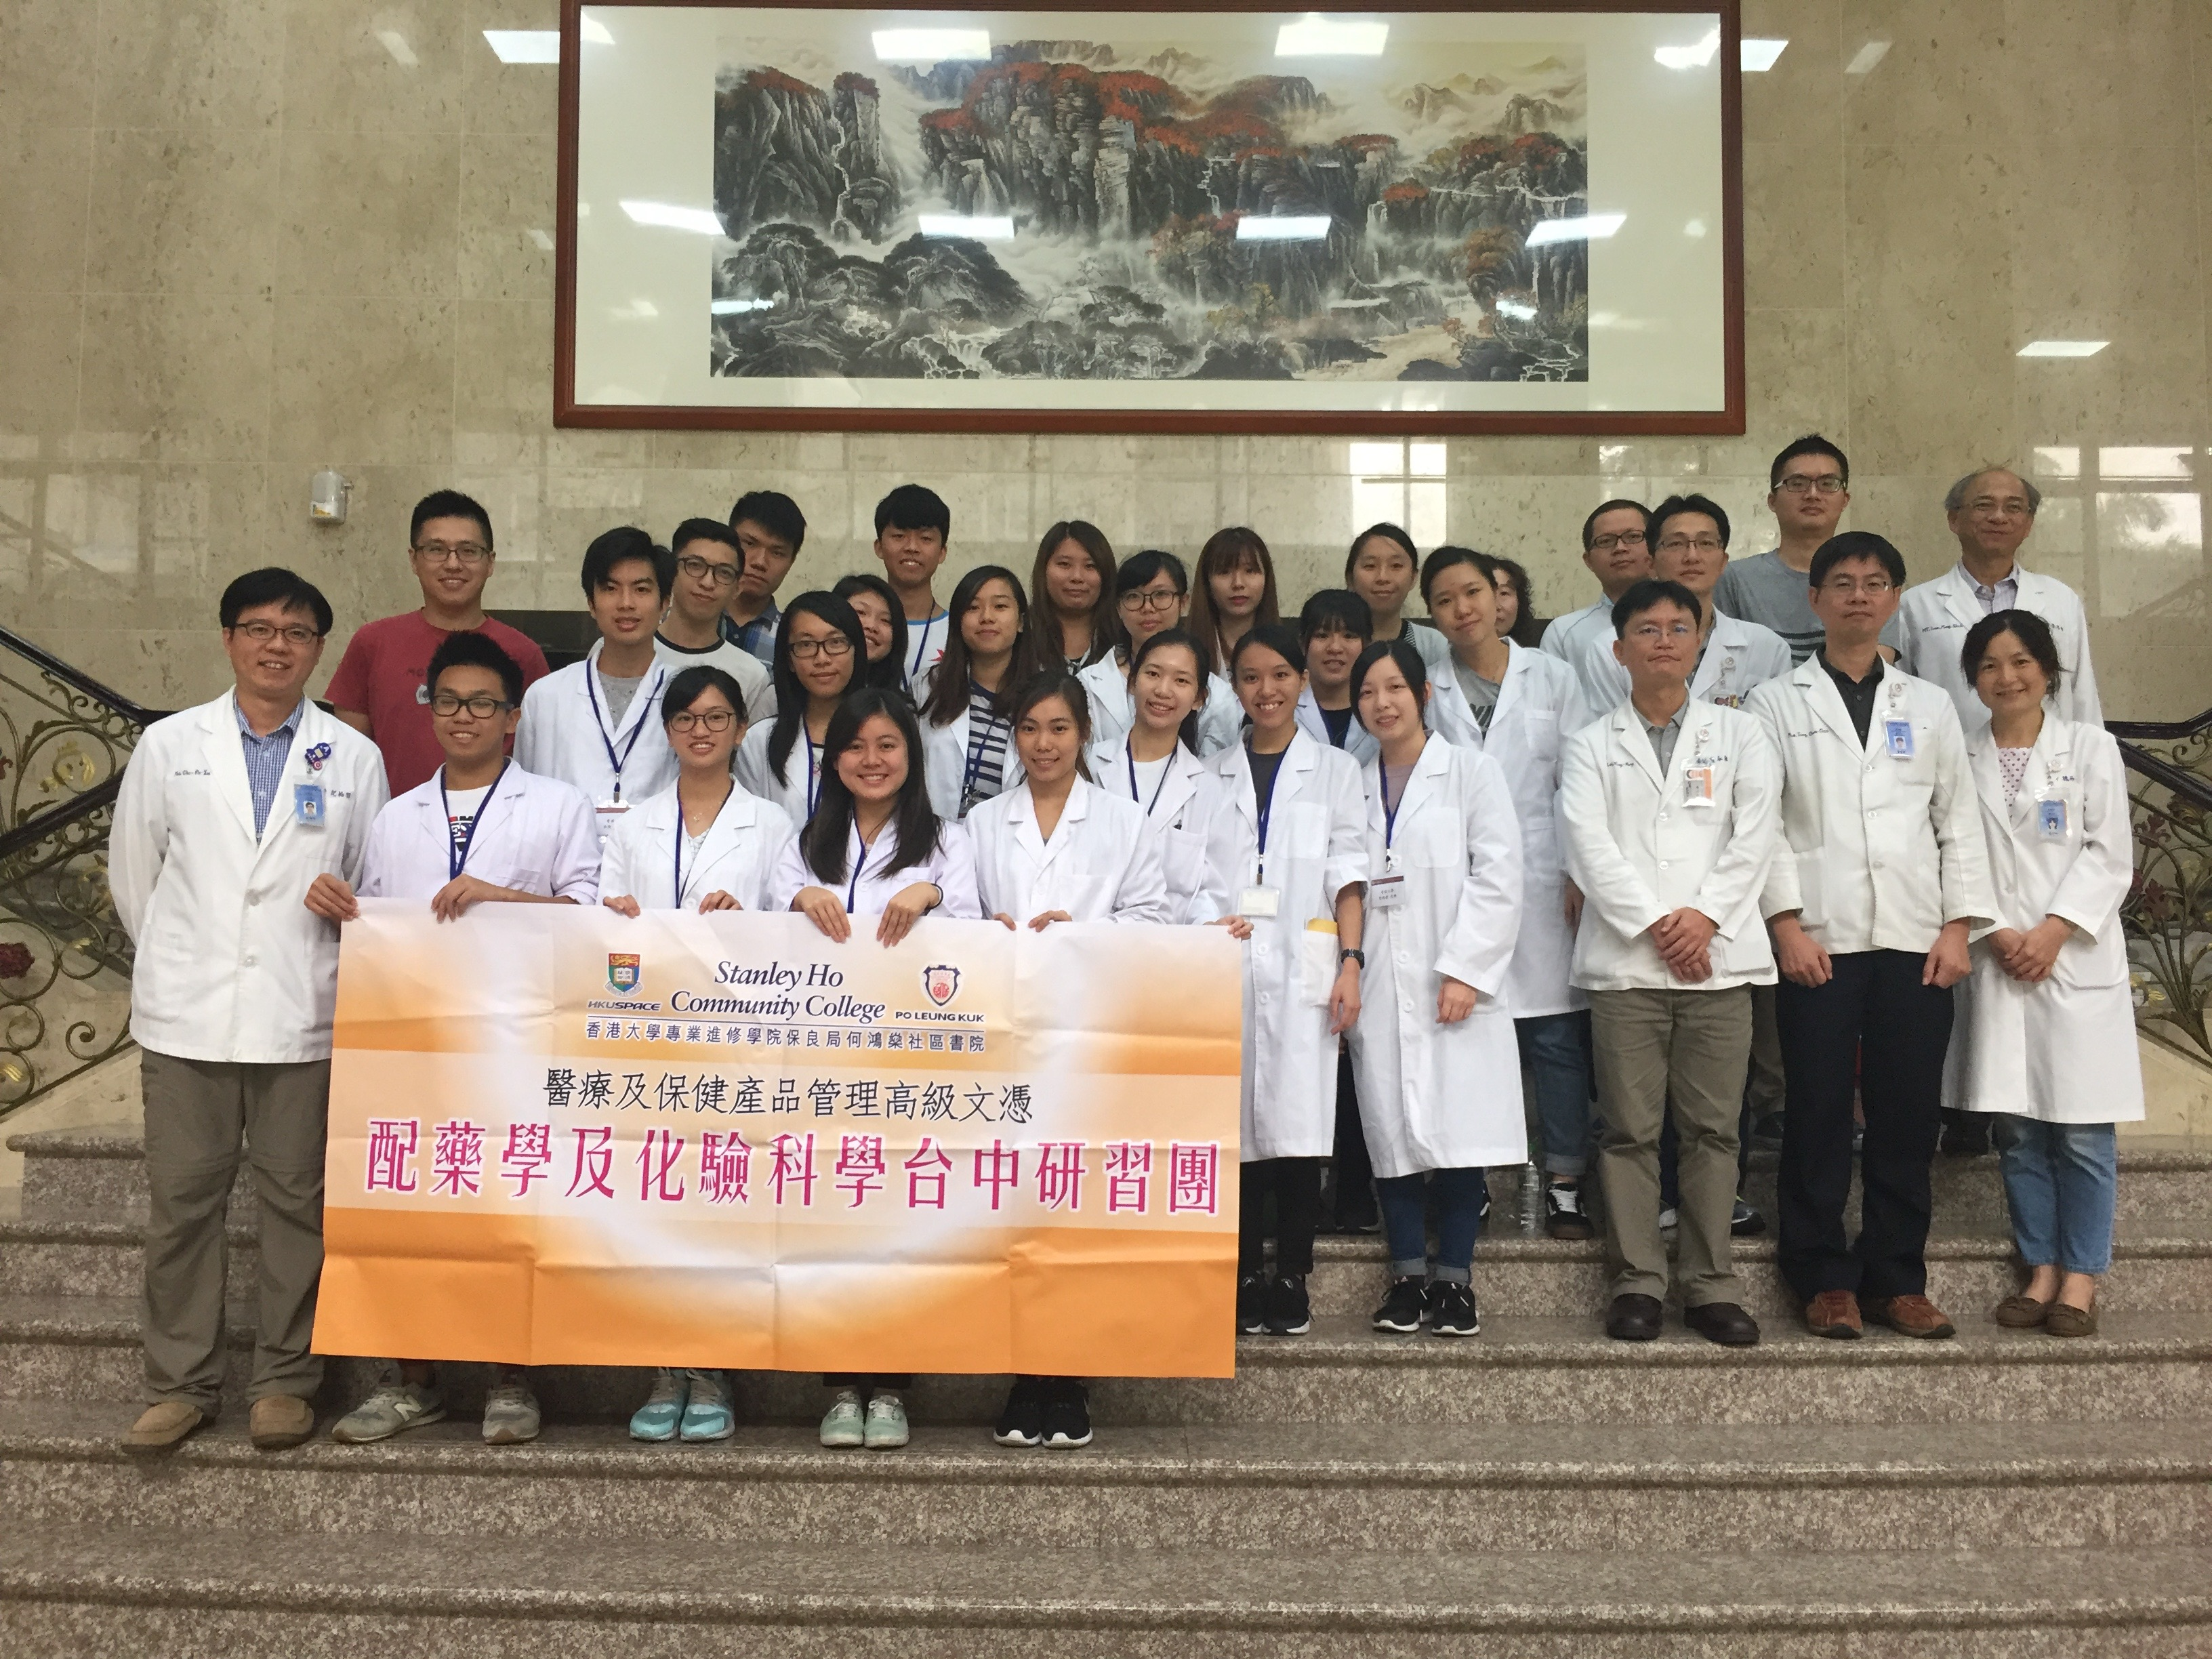 2016 Overseas Learning Experience in Chung Shan Medical University Hospital (Taiwan) - Photo - 1